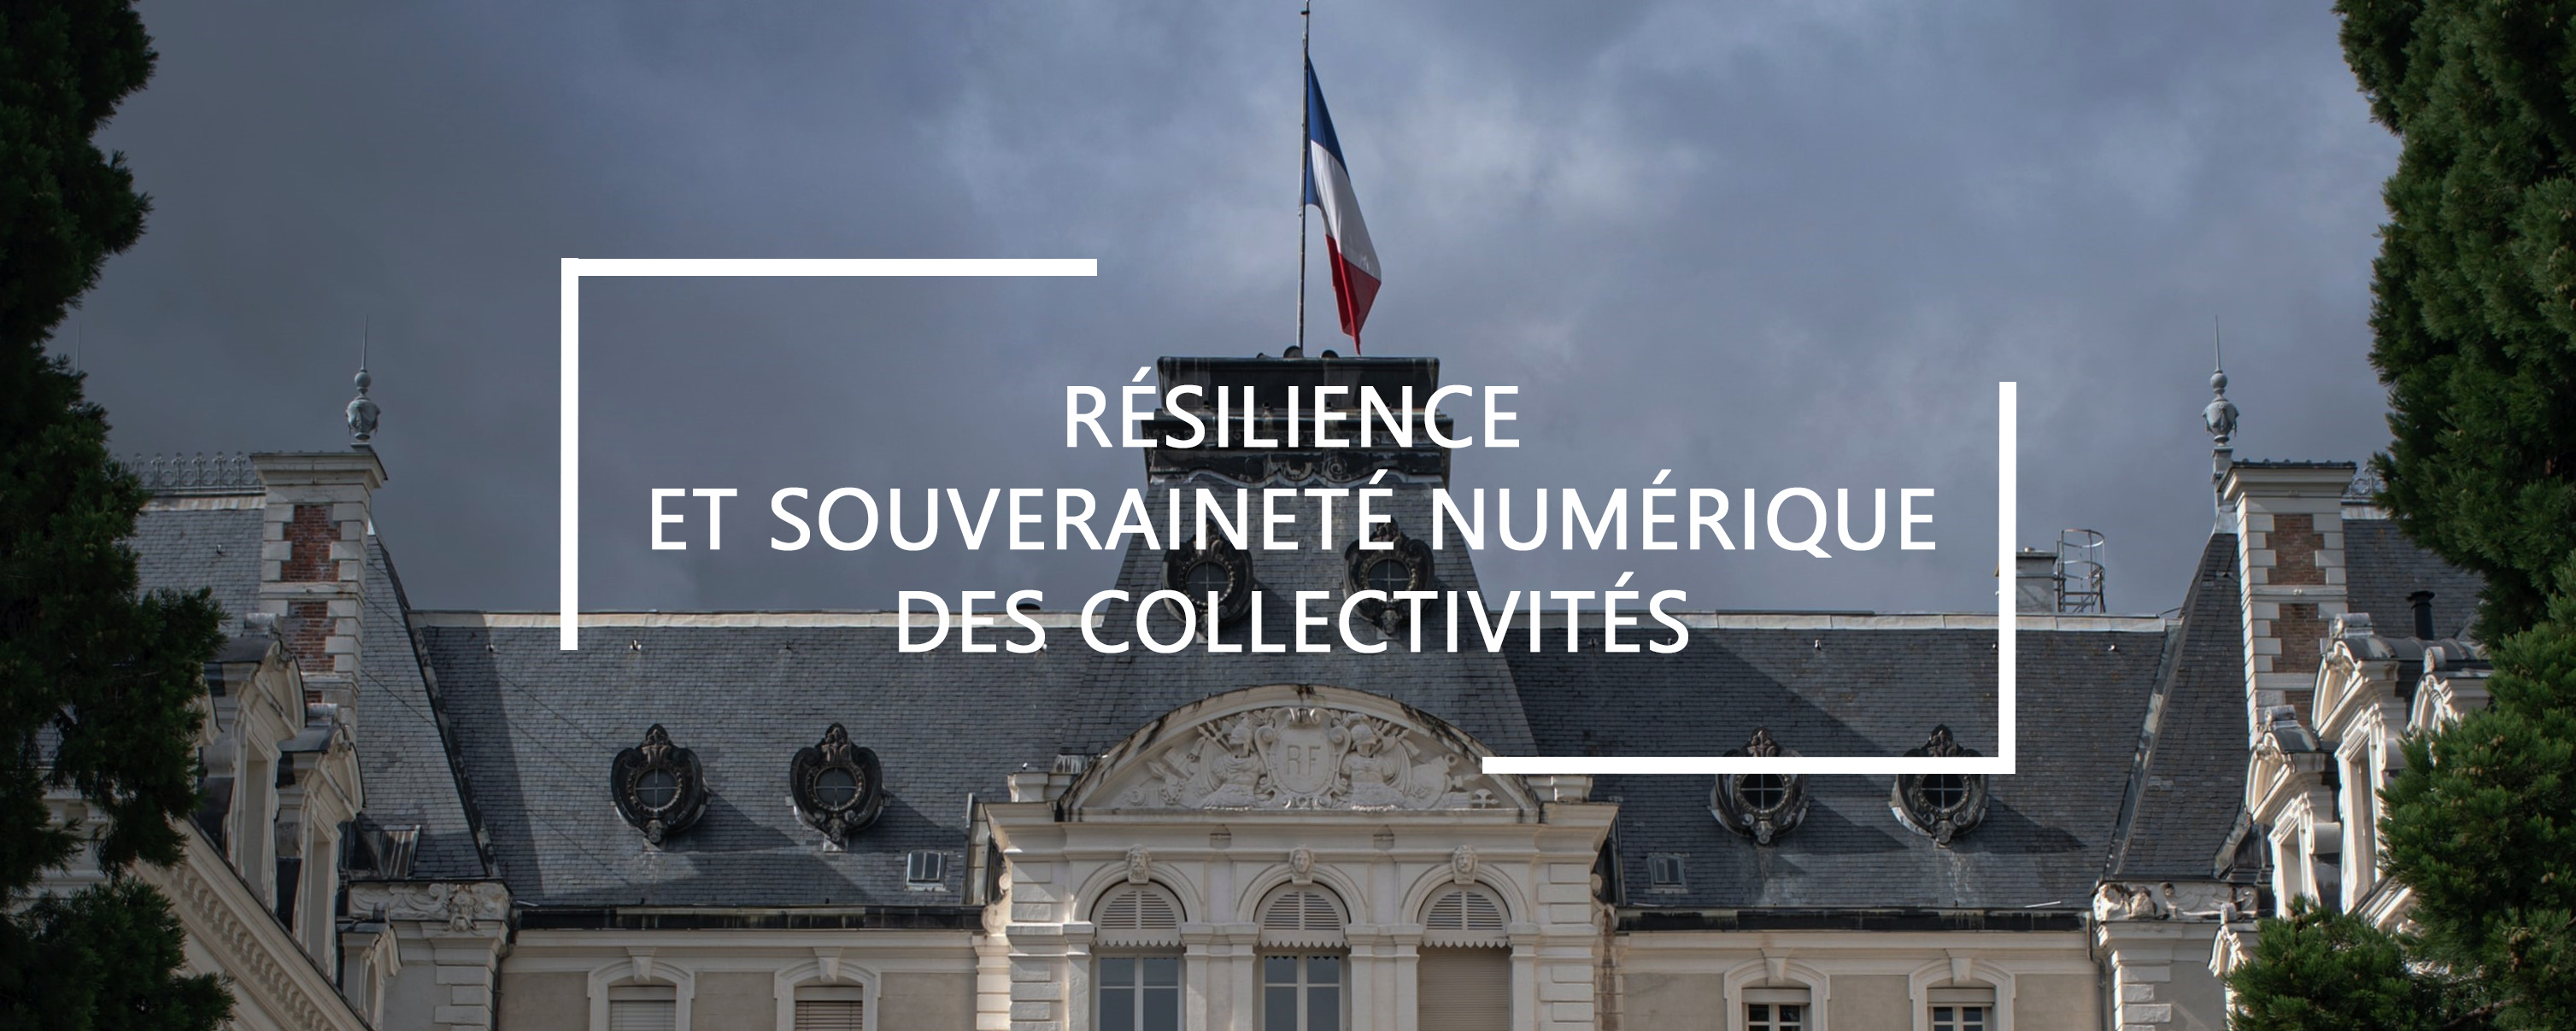 resilience collectivite